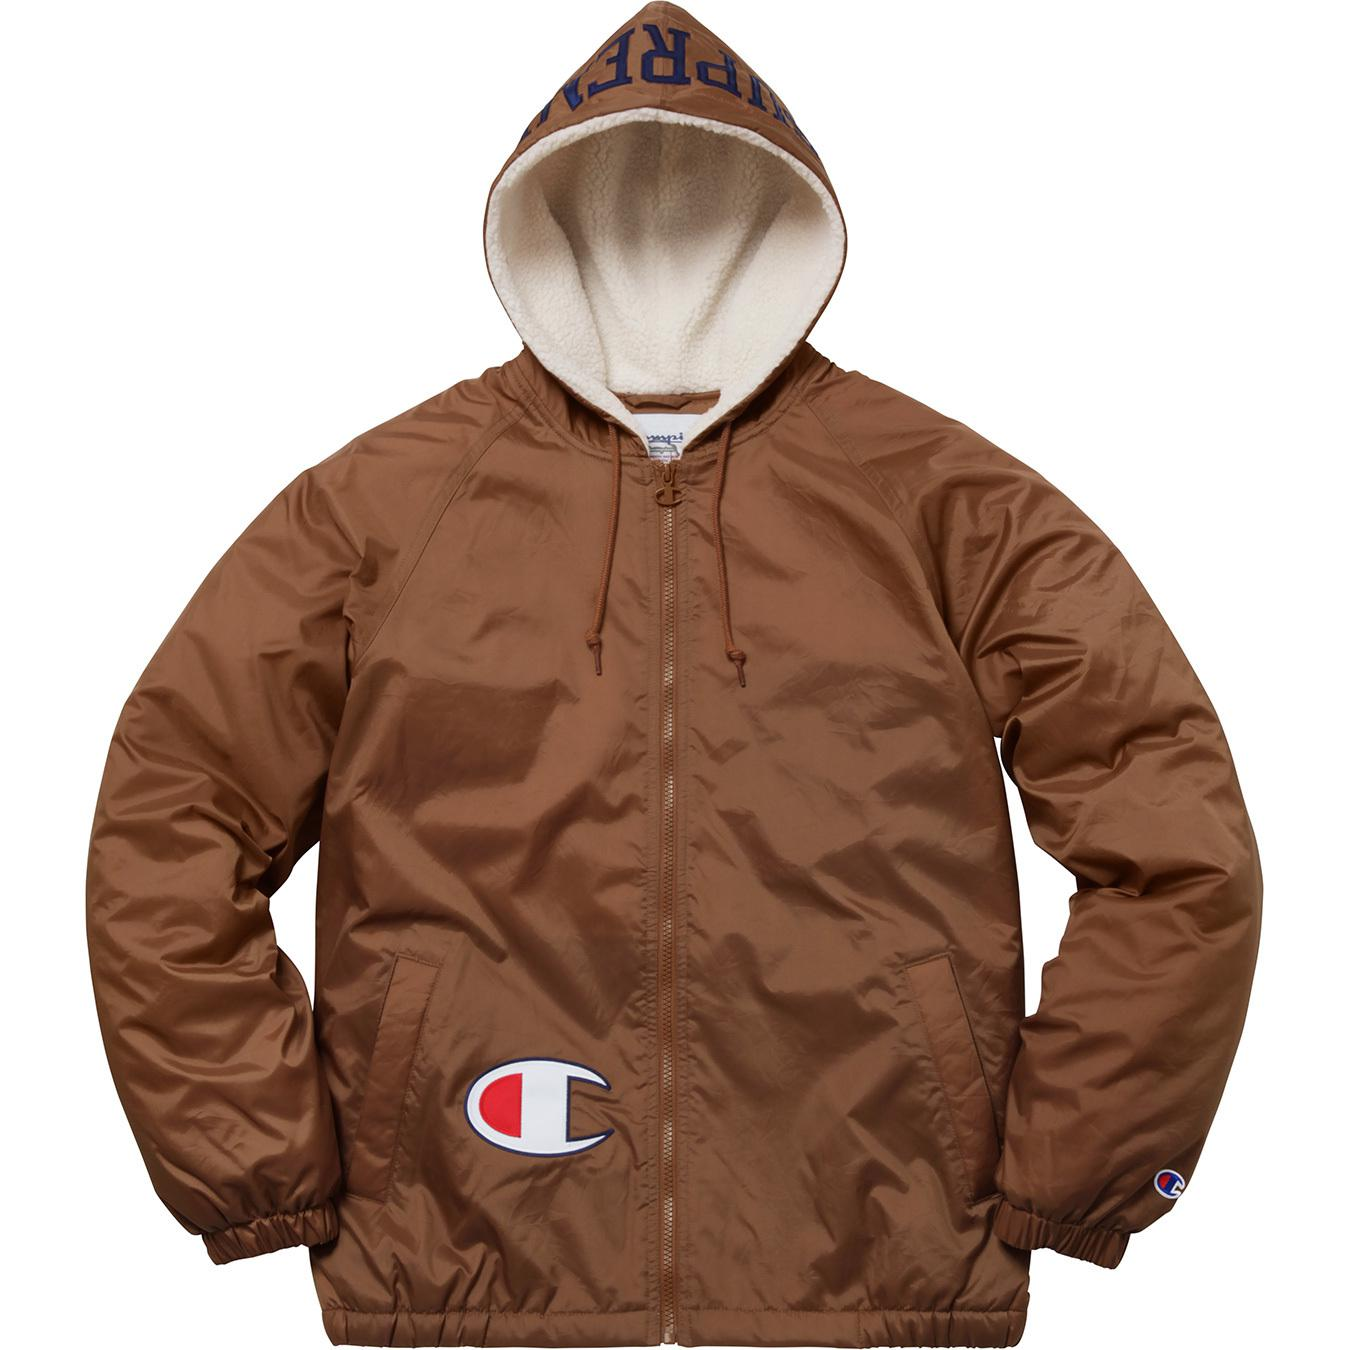 4b3028ae Supreme Champion Sherpa Lined Hooded Jacket Brown in Brown for Men ...